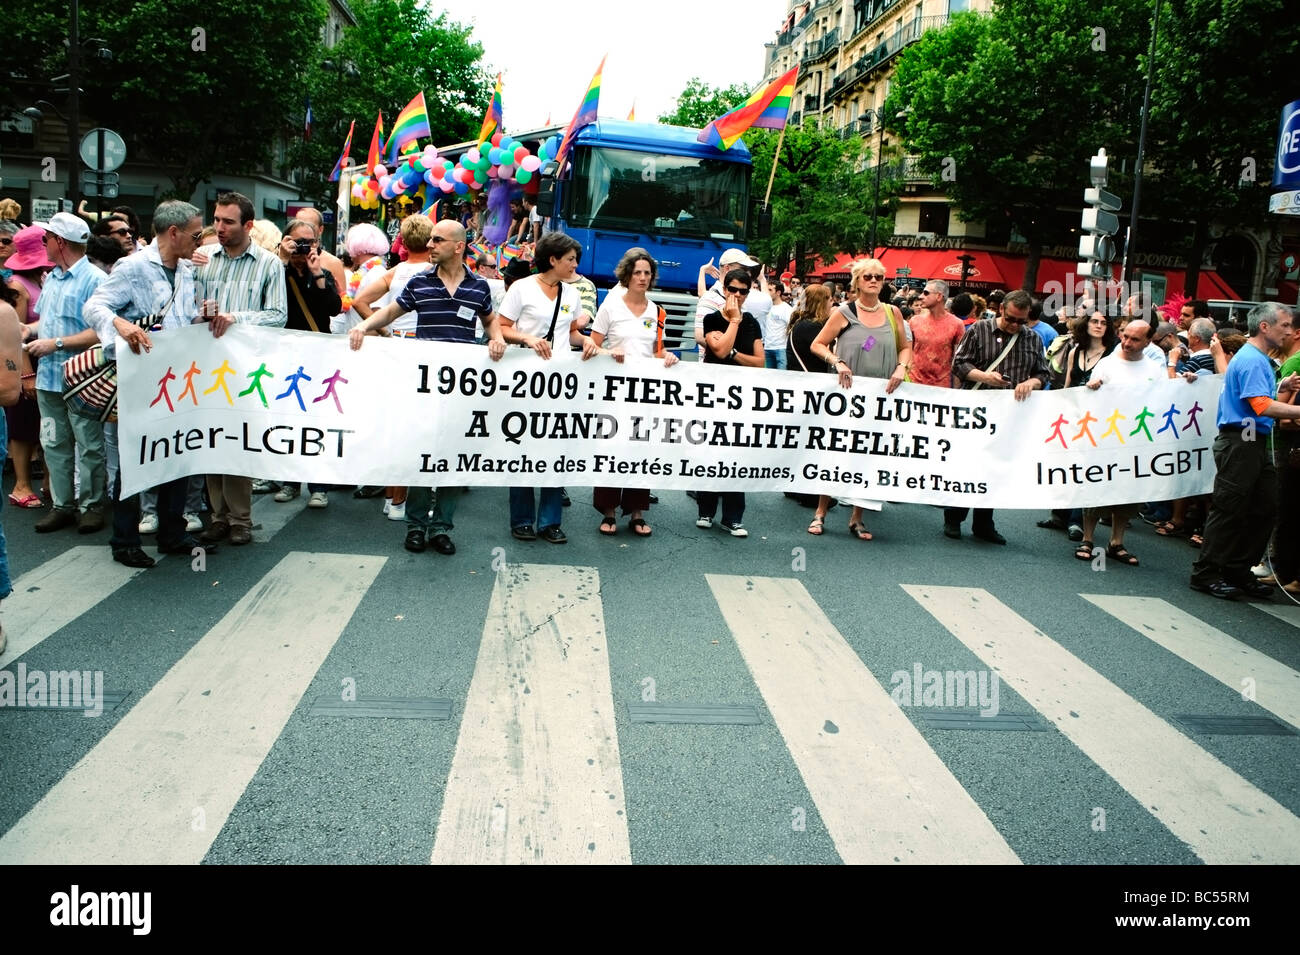 """Paris France, Public Events People Celebrating at the Gay Pride Parade """"French Sign"""" """"1969 - 2009 Proud of our Struggles"""", lgbt march banner, g Stock Photo"""